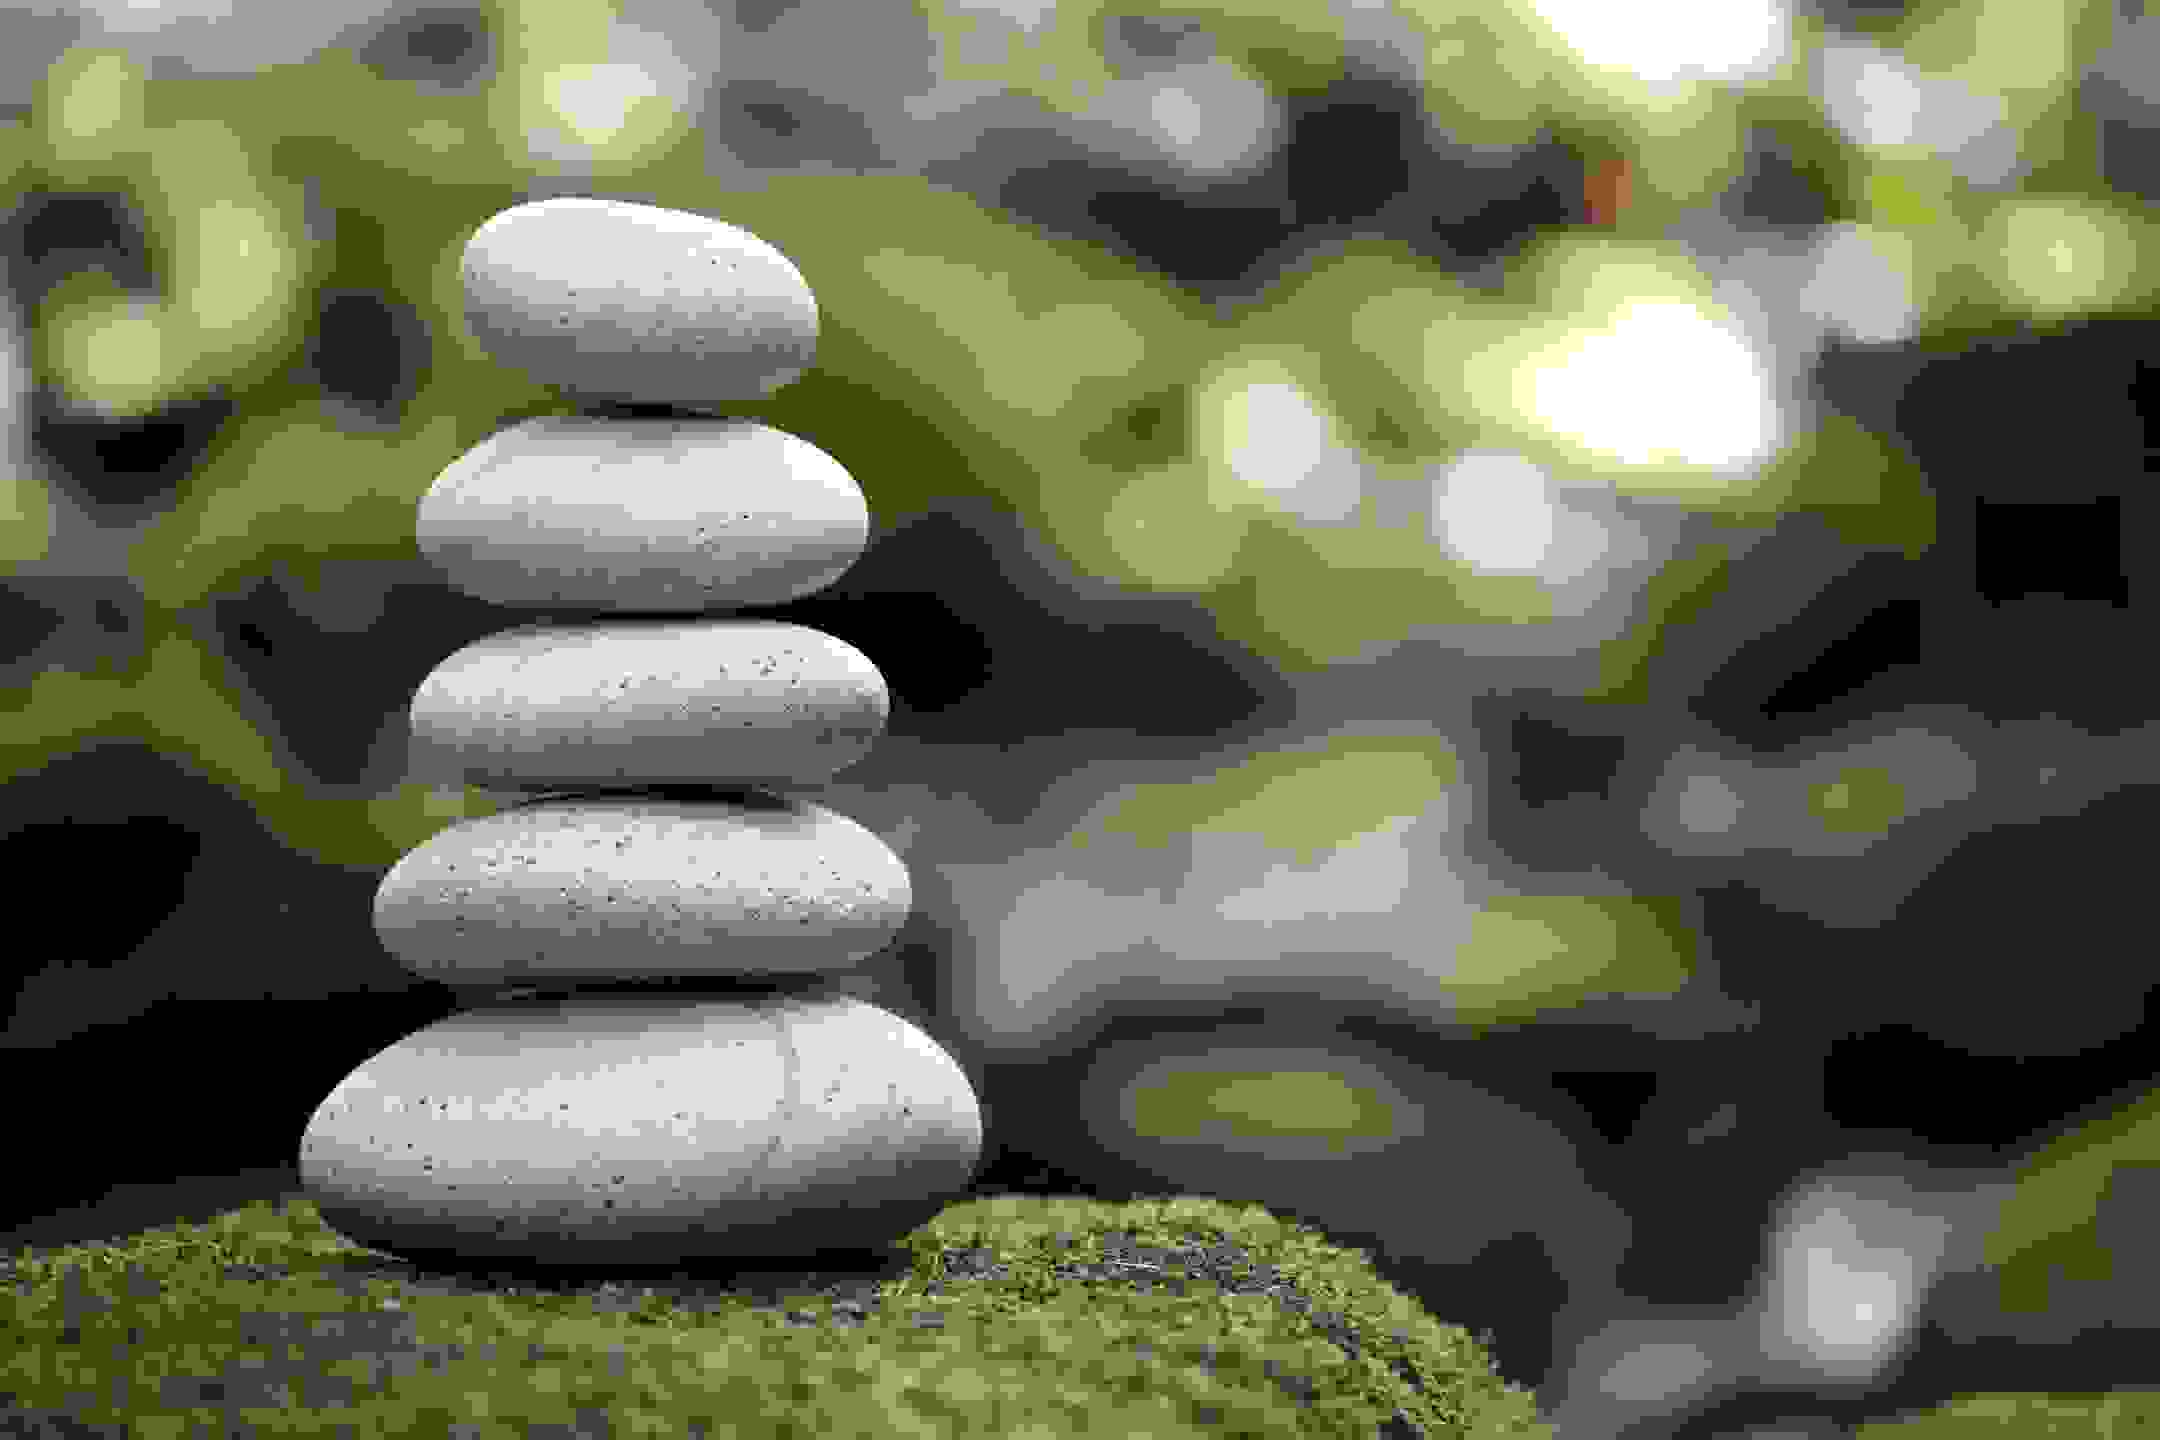 5 smooth and round stones piled vertically on a big mossy stone representing stress mangement for ti